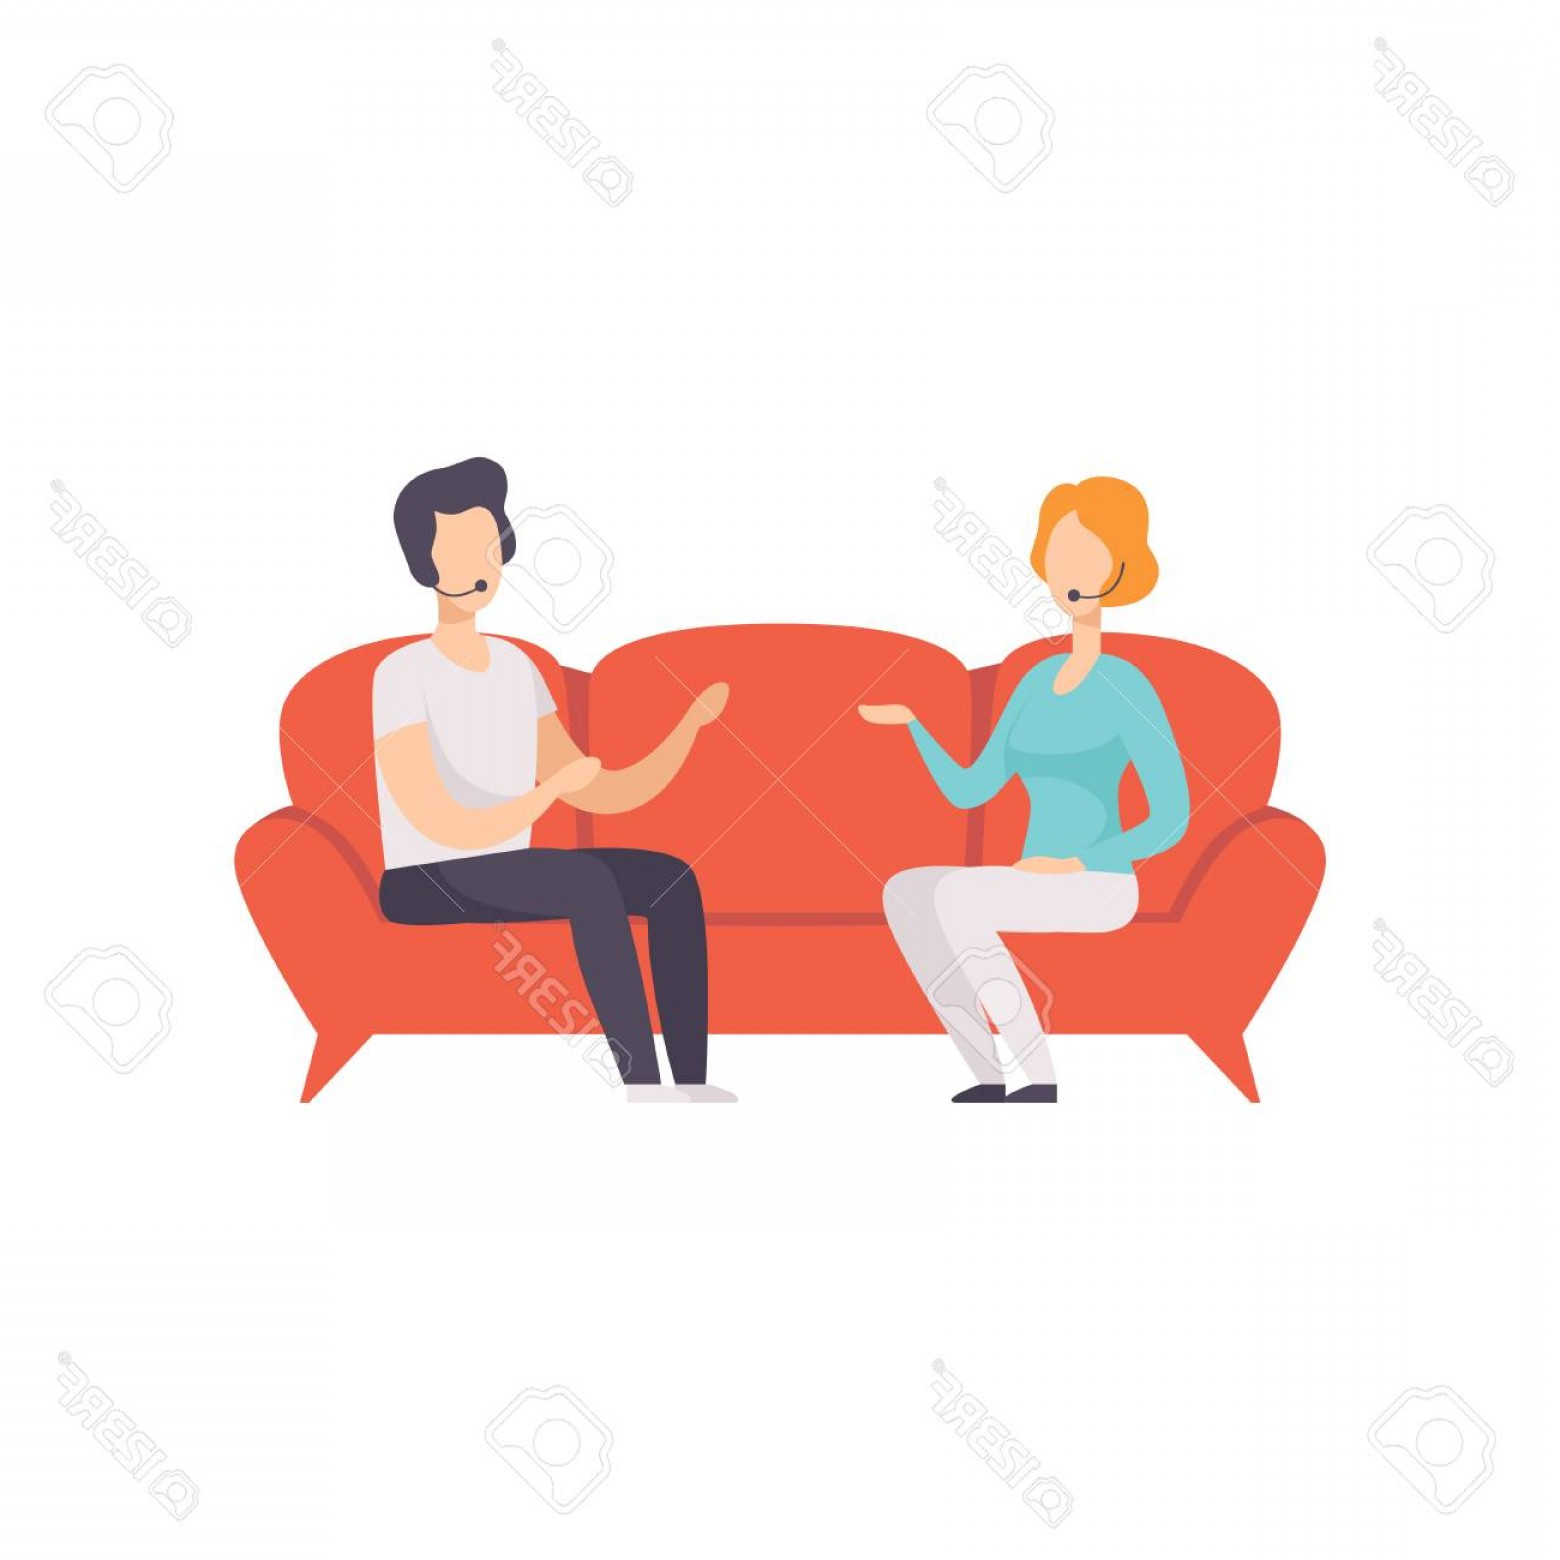 Talk Show Vector: Photostock Vector Journalist Interviewing Guest In A Tv Studio Talk Show Vector Illustration On A White Background